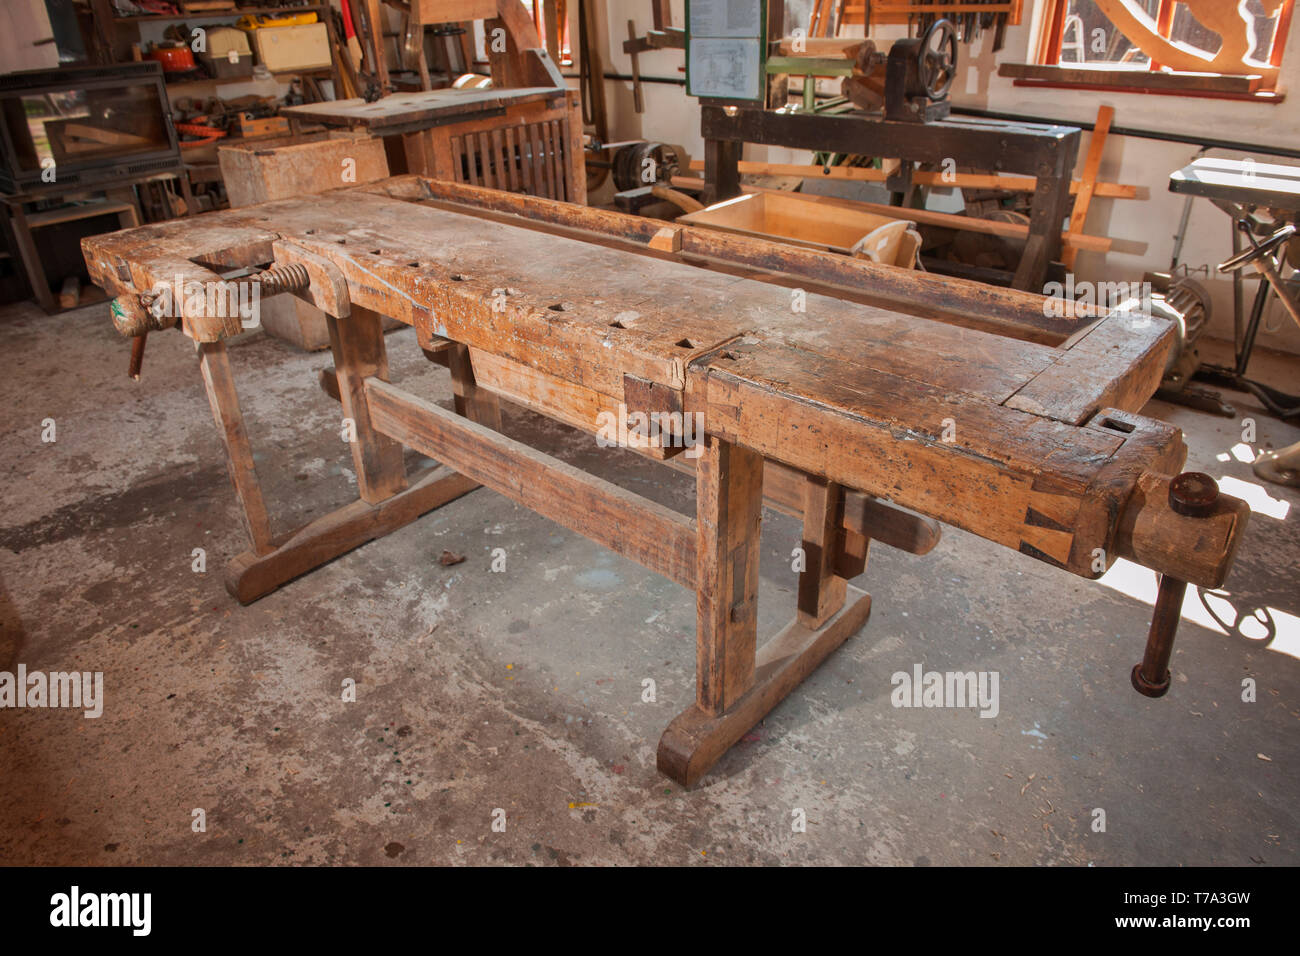 Brilliant Freestanding Workbench In An Old Carpentry Stock Photo Machost Co Dining Chair Design Ideas Machostcouk